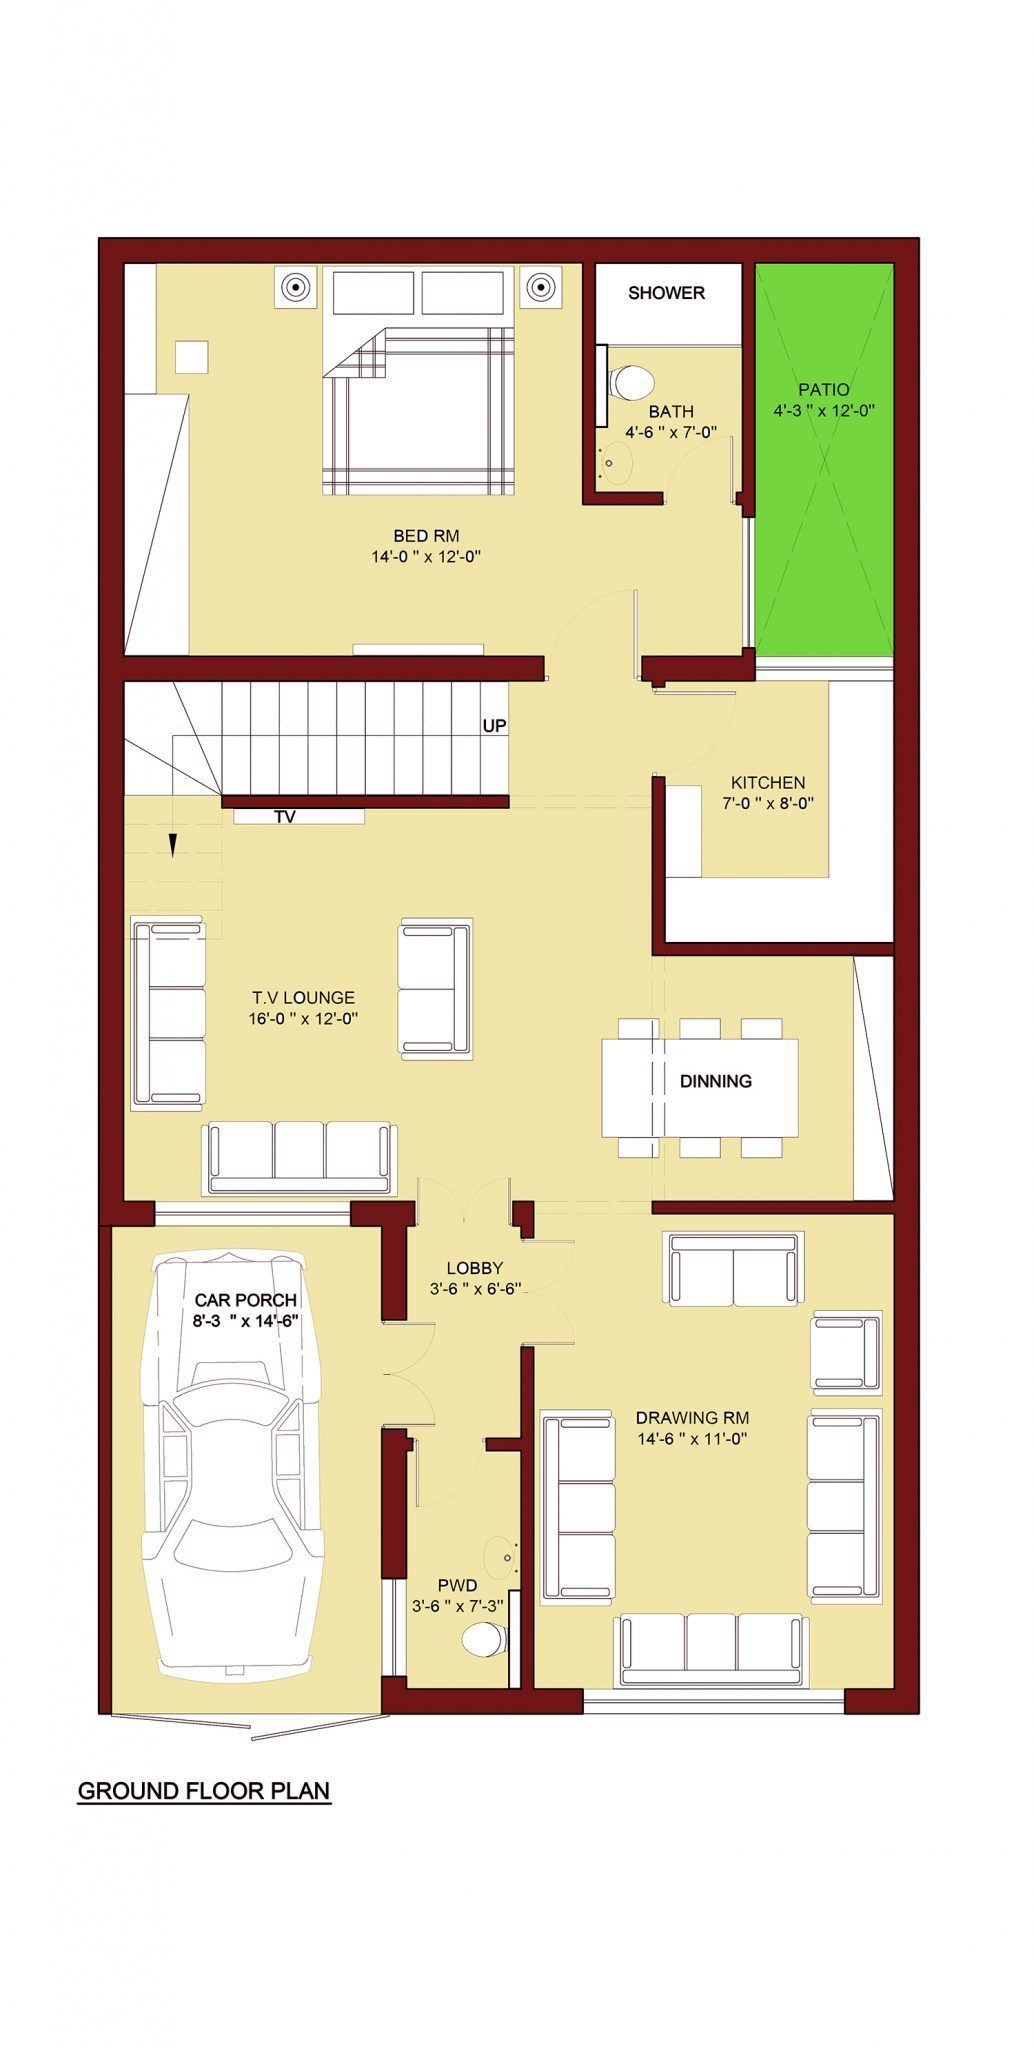 100 sq m home plan 5 marla 4 bed room 5 marla house plan